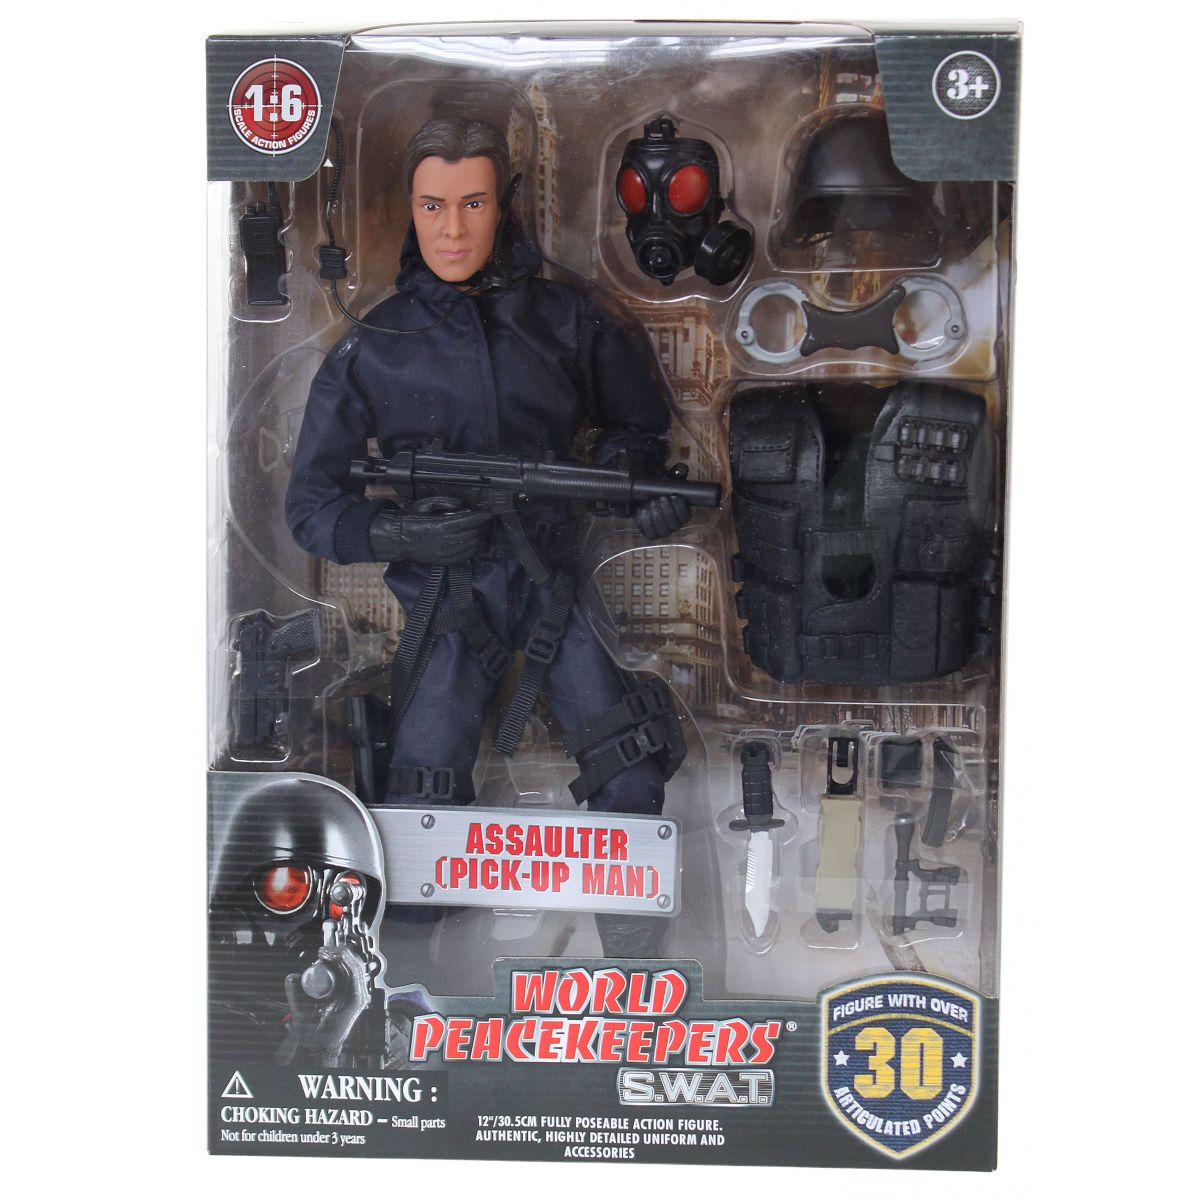 World Peacekeepers S.W.A.T. figurka 305 cm Assaulter Pick-Up Man